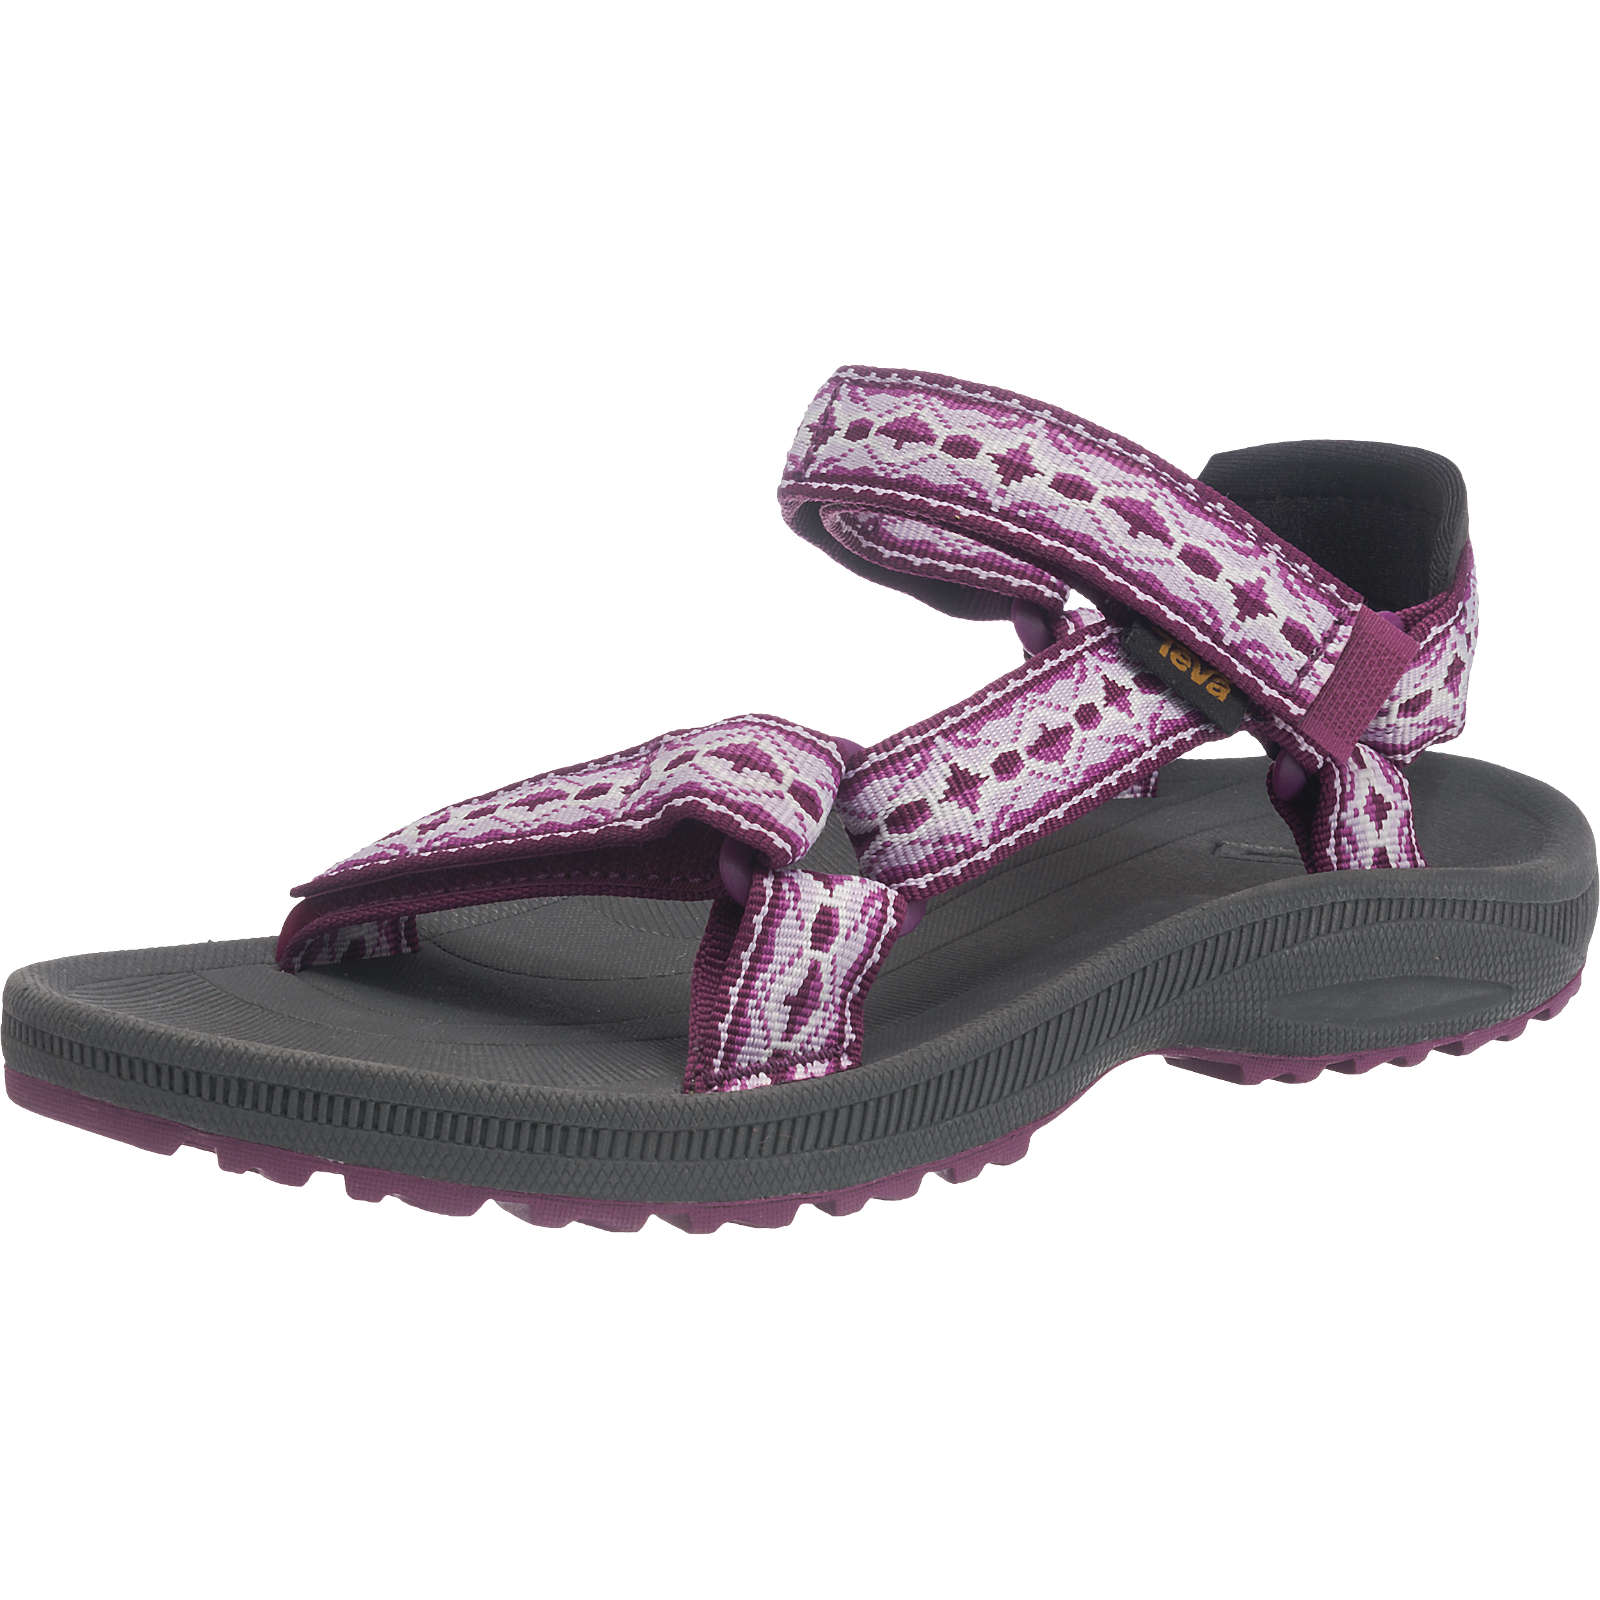 Teva Winsted Outdoorsandalen lila-kombi Damen Gr. 40